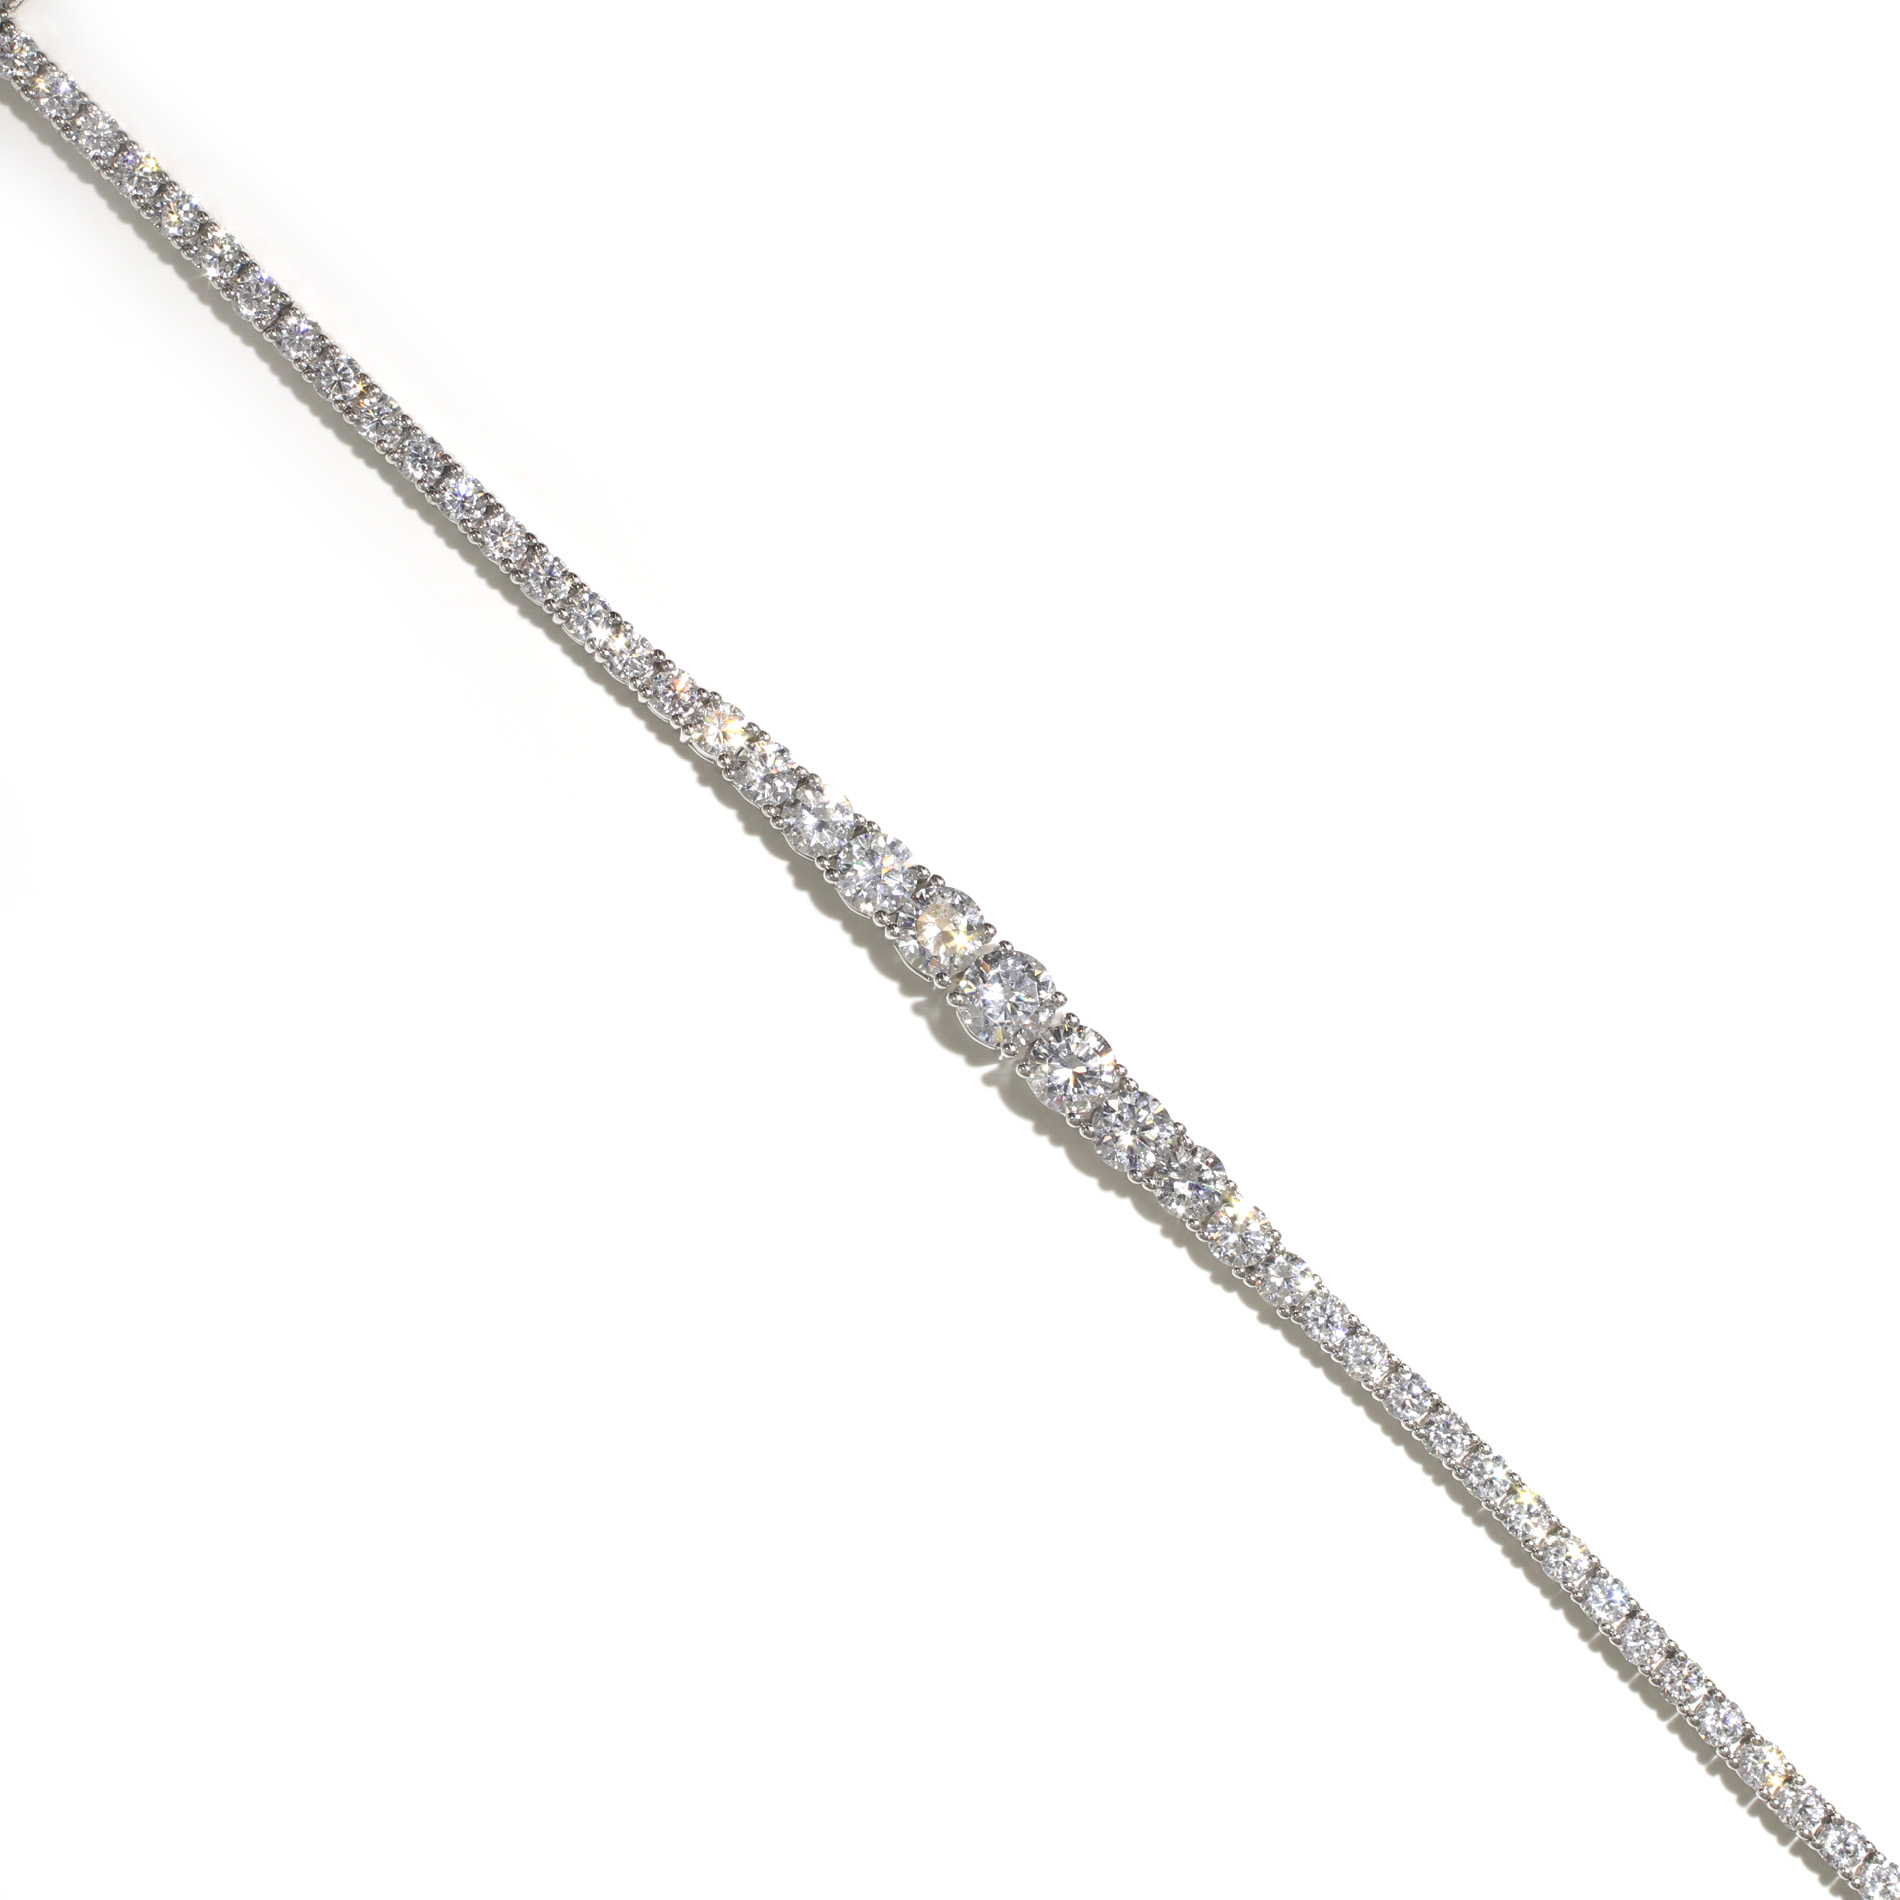 Tapered Tennis Bracelet